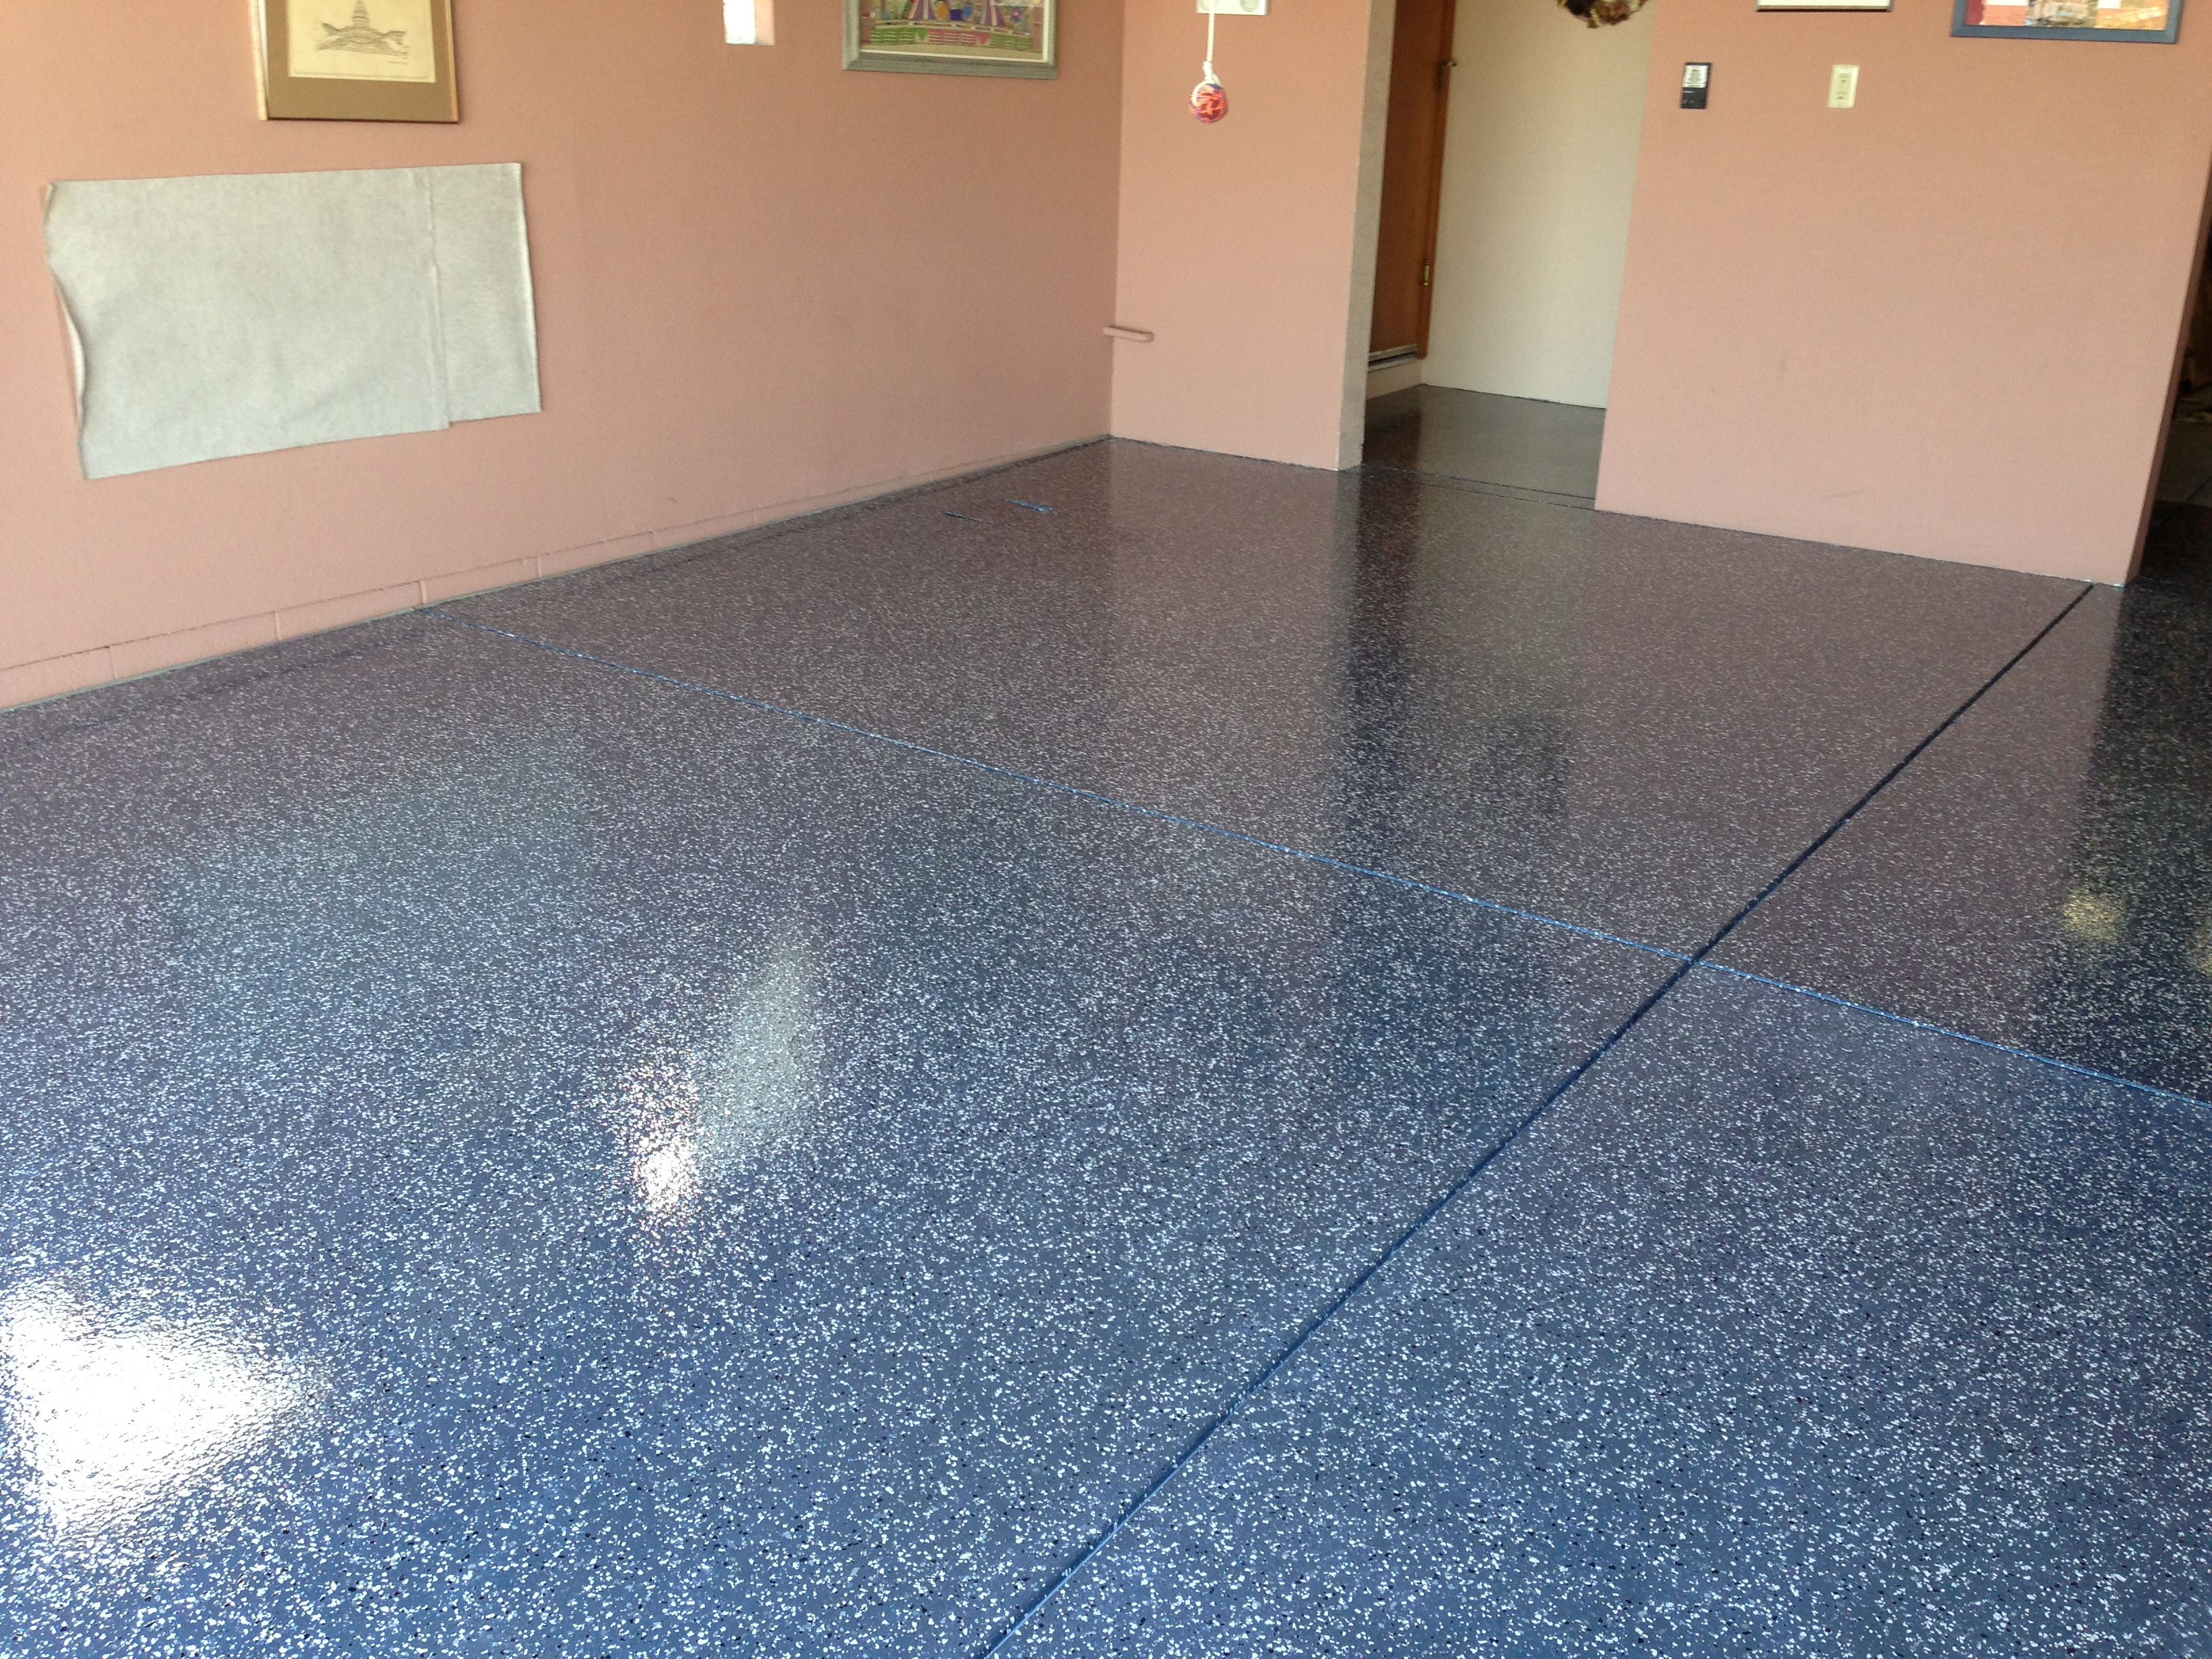 Garage Epoxy Tucson Garage Epoxy Flooring Installation In Tucson Az By Arizona